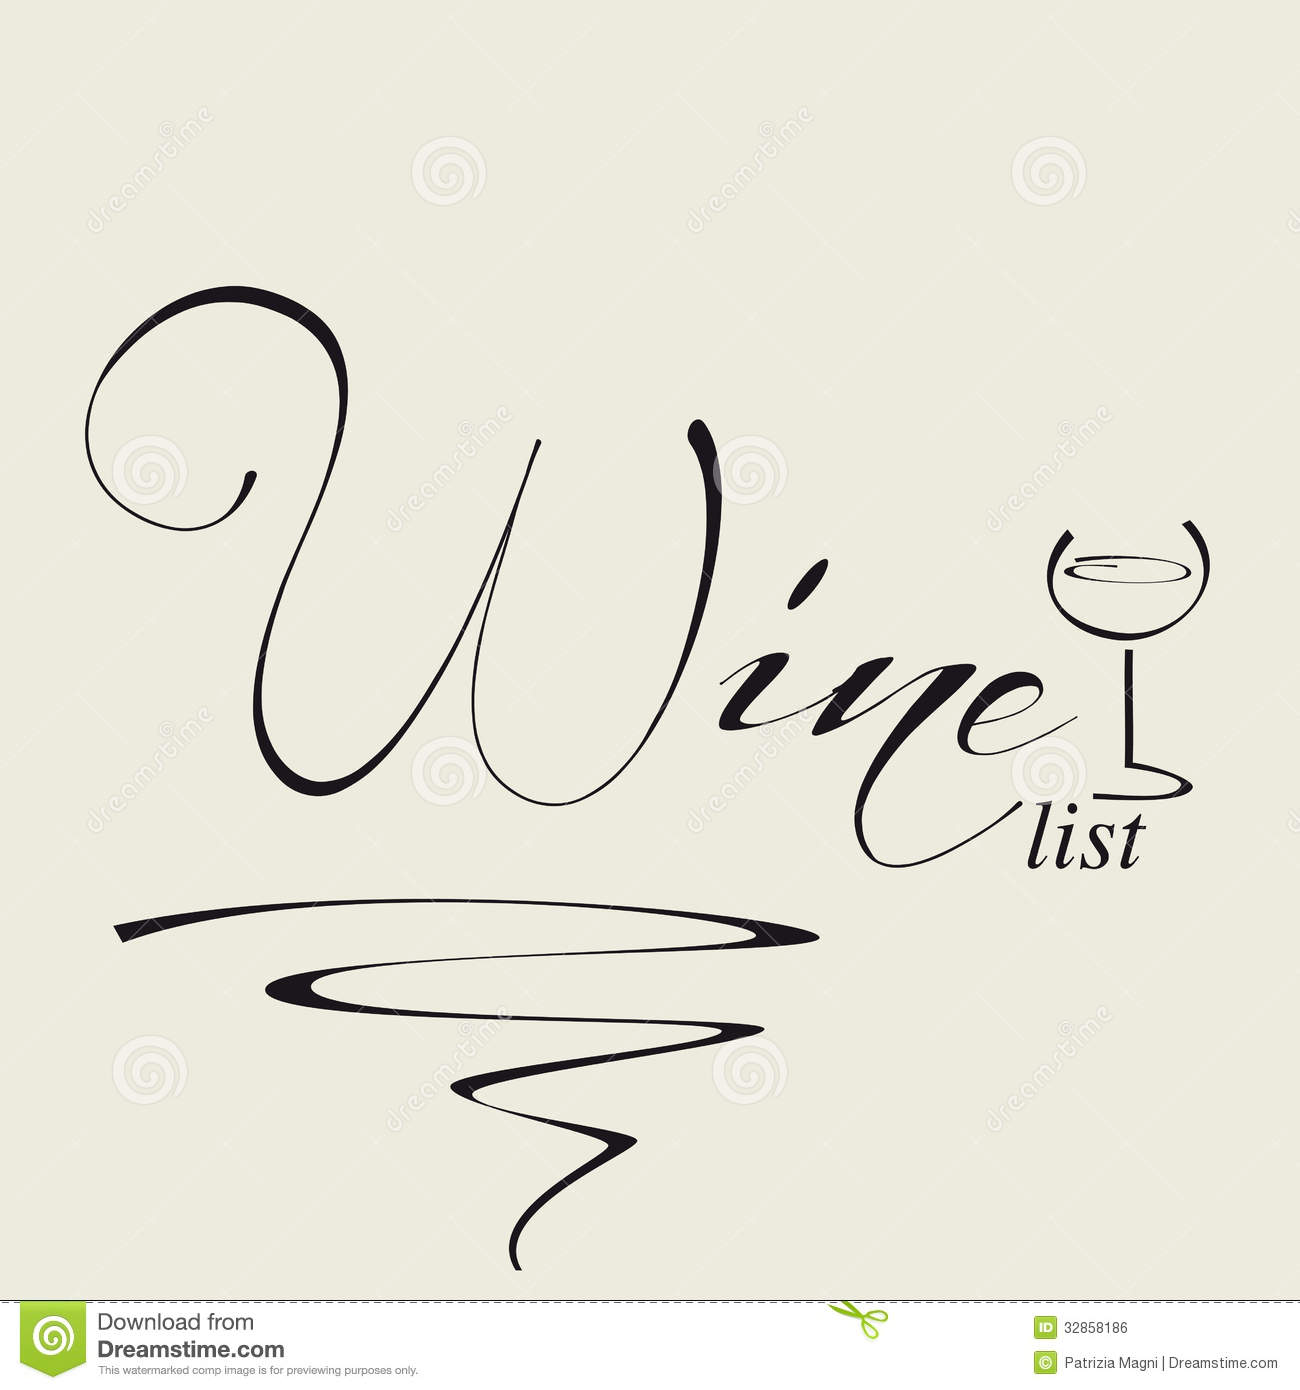 Cover For Wine List Royalty Free Stock Image.